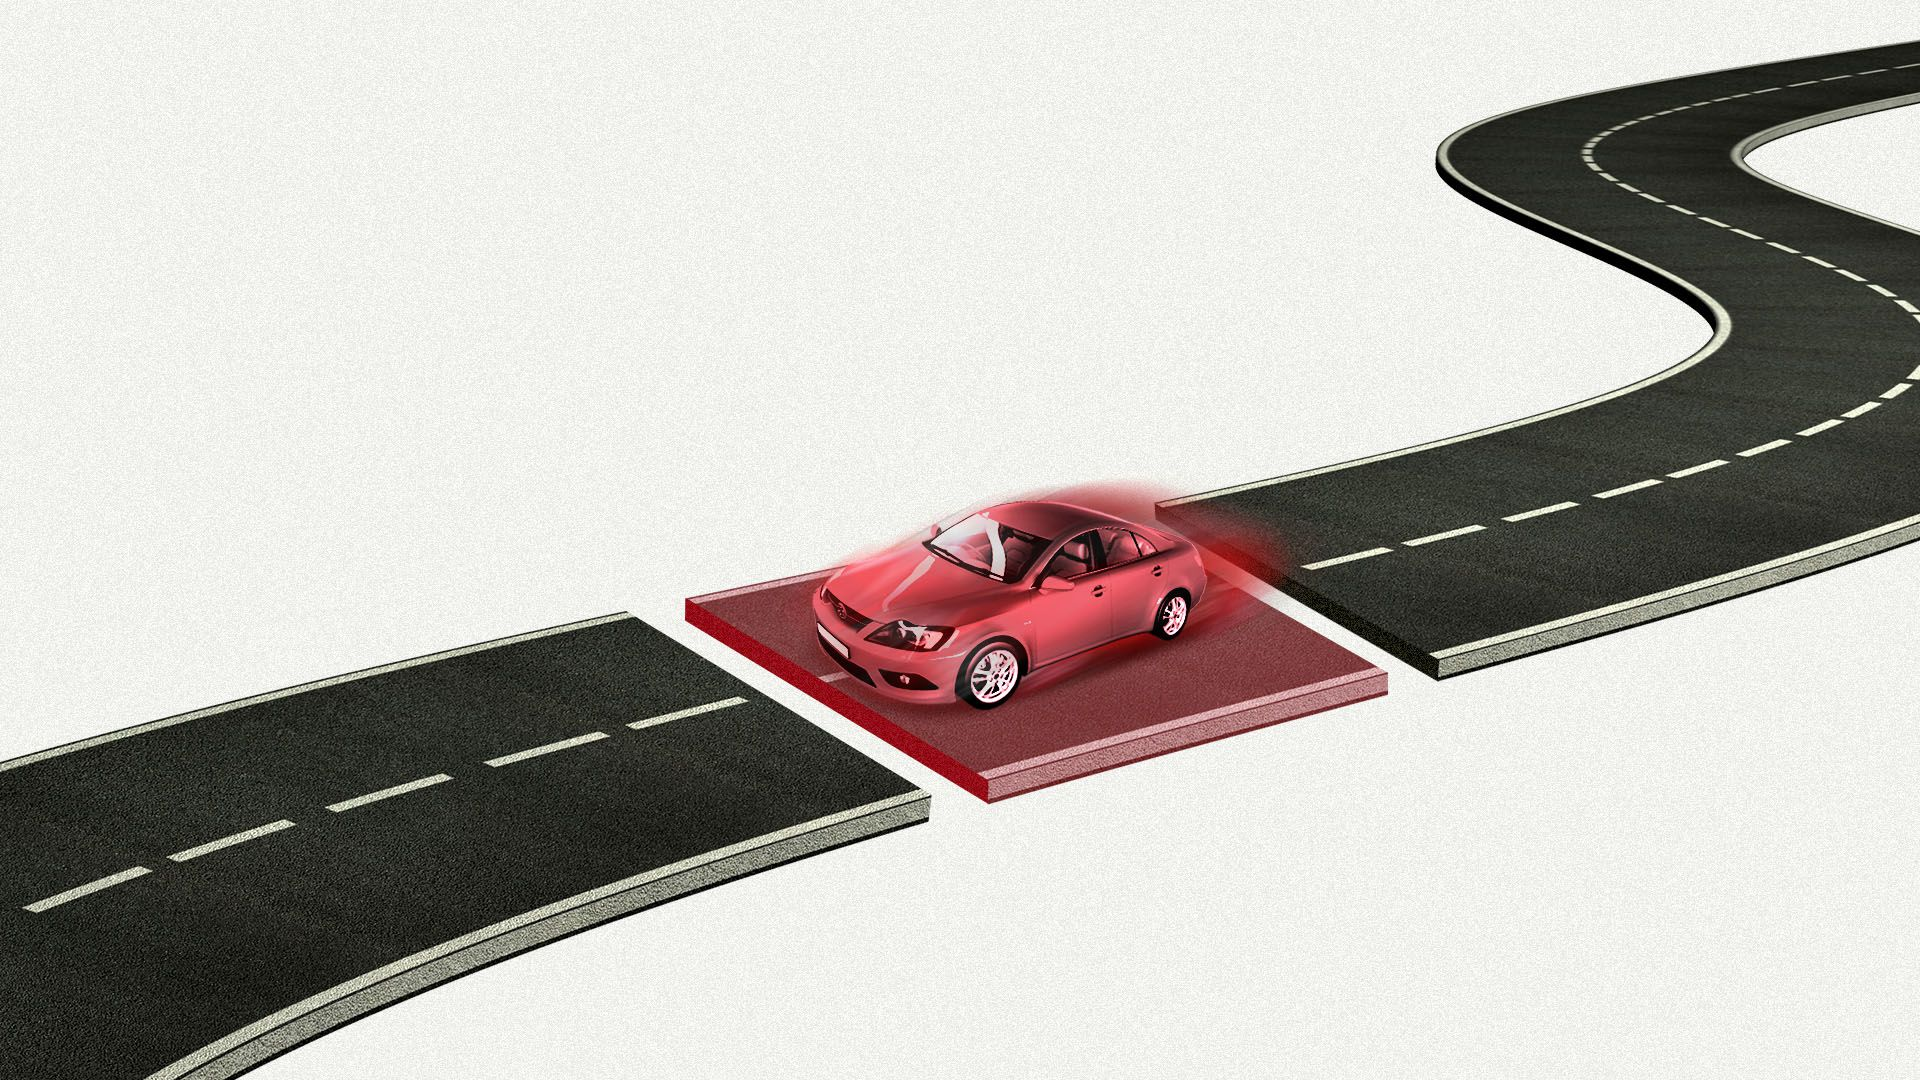 Illustration of a road with a middle section highlight in red, with a red car speeding on it